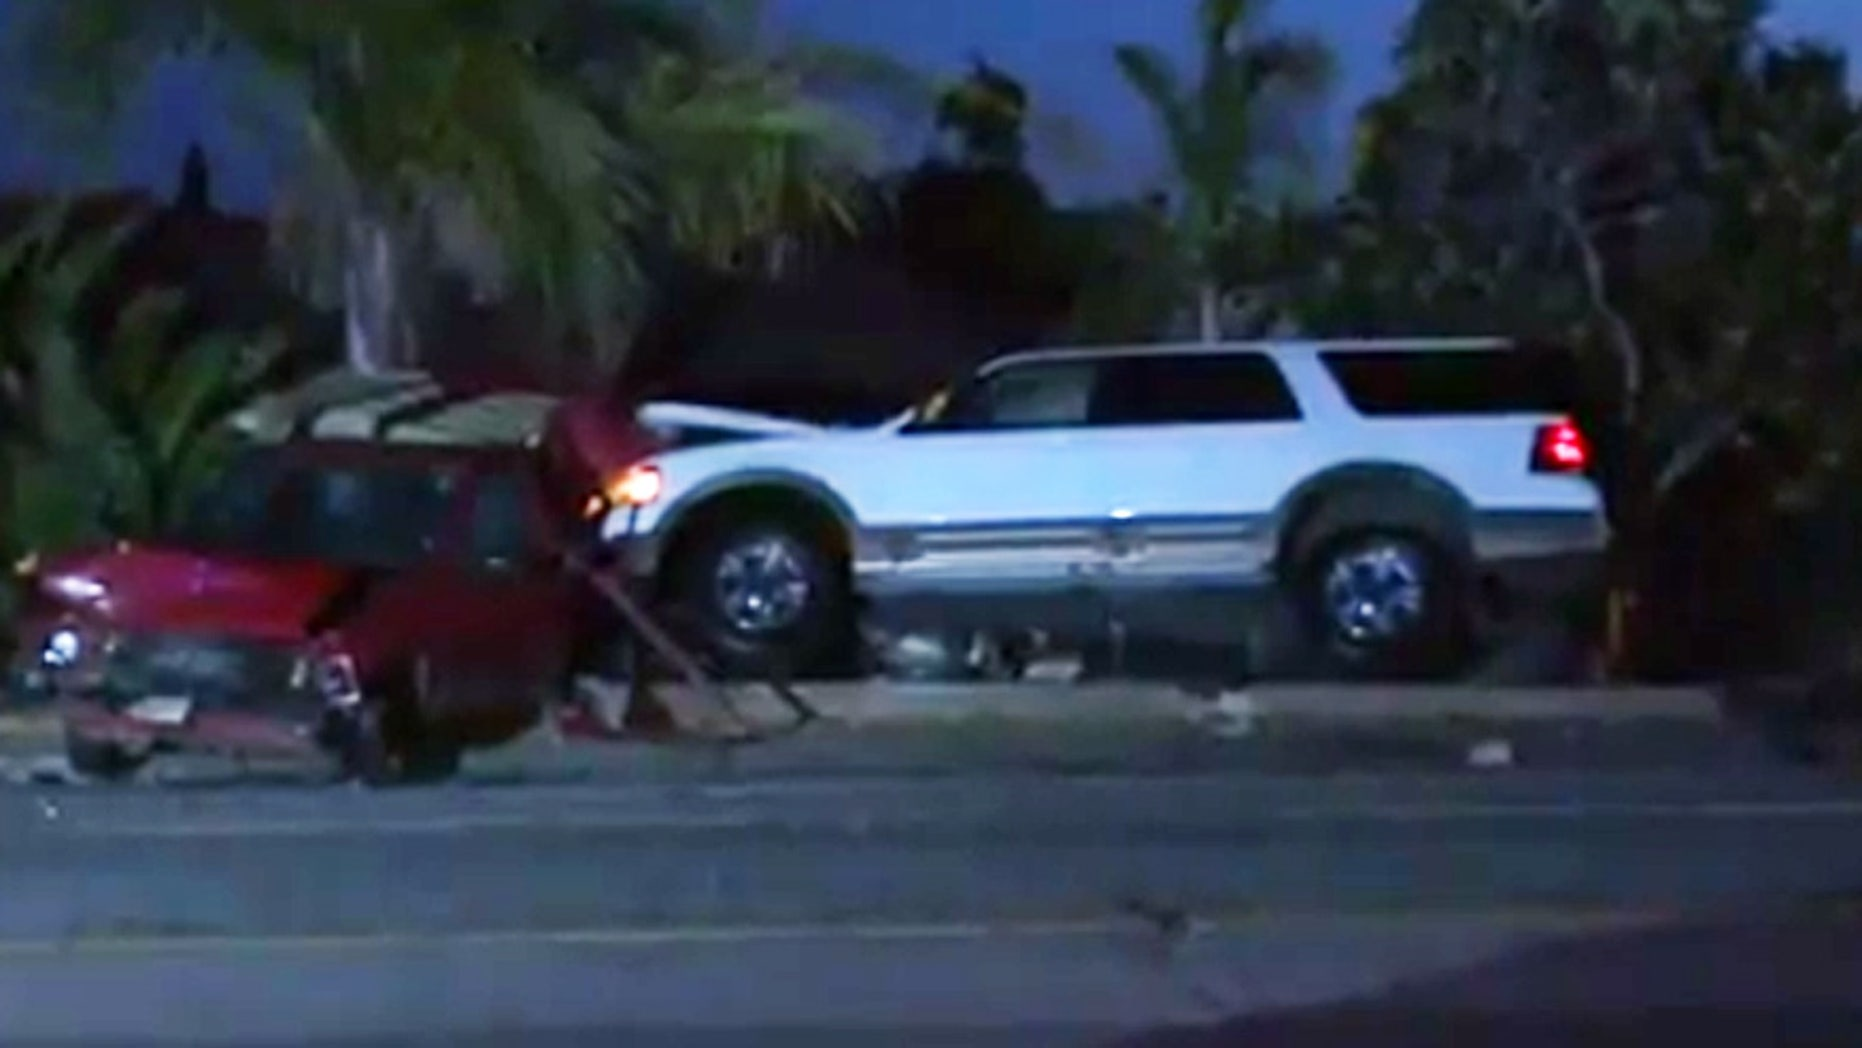 A Fox 5 photographer rescued a man who crashed into a parked vehicle with his SUV.